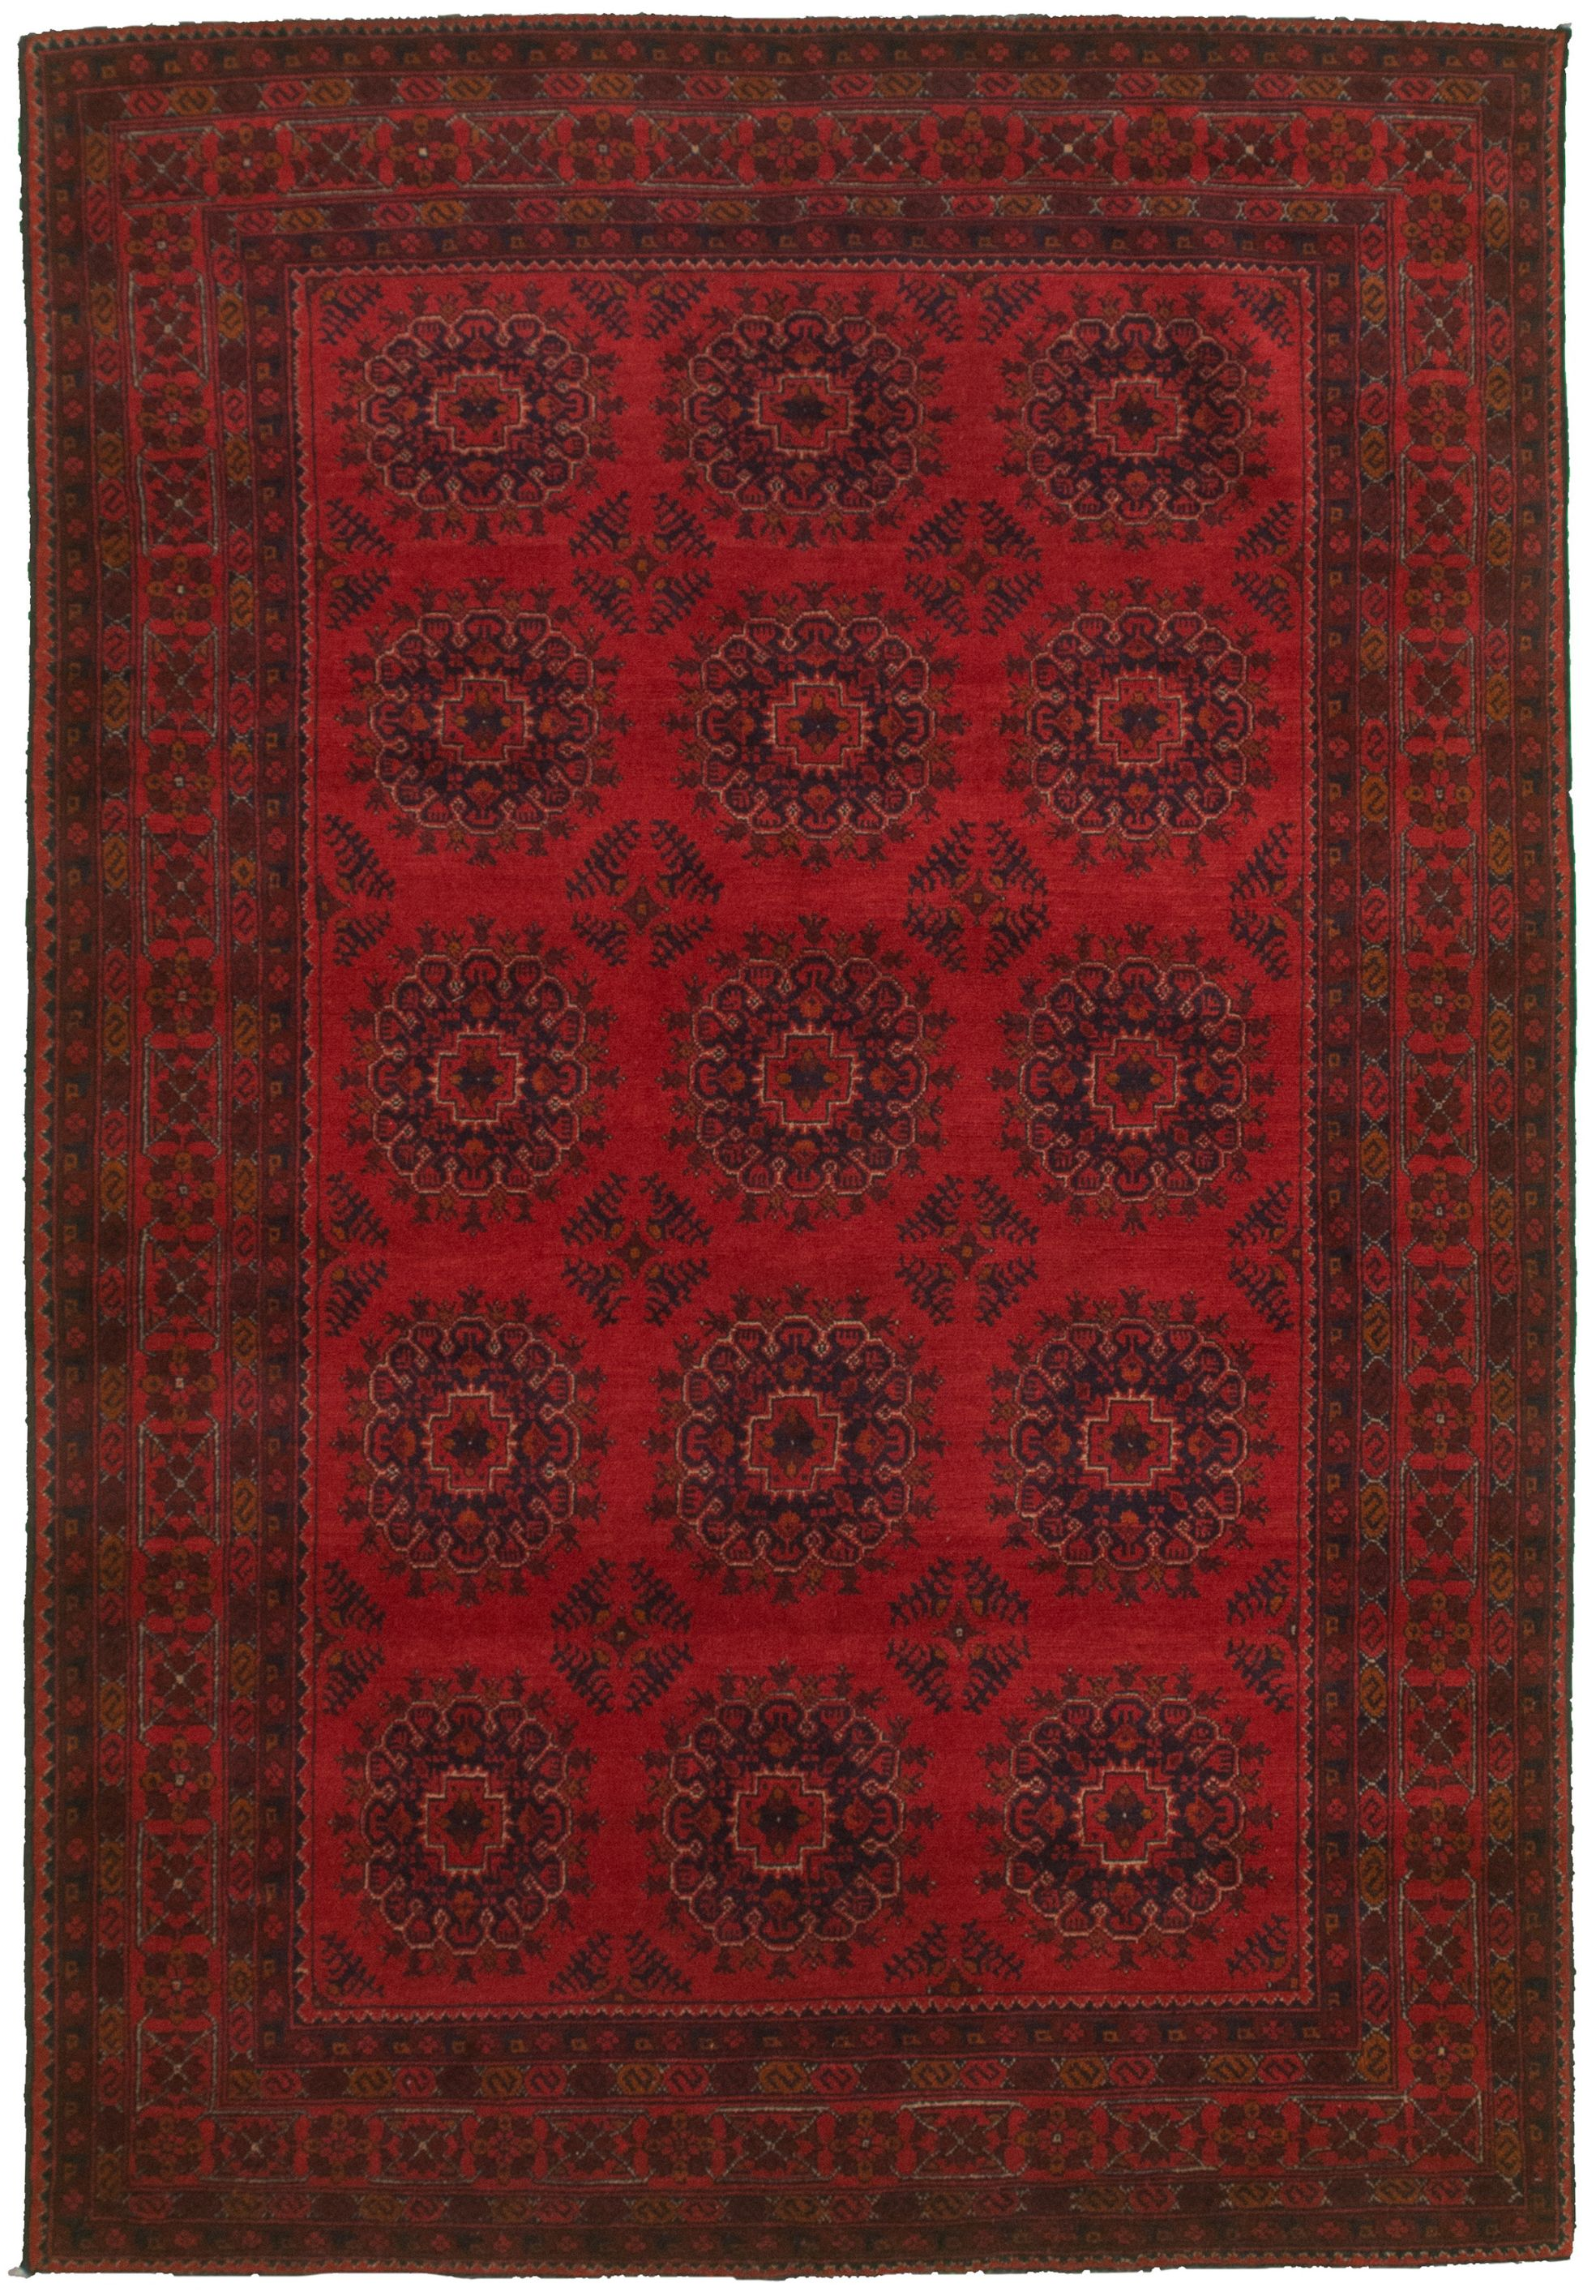 """Hand-knotted Finest Khal Mohammadi Red  Rug 5'4"""" x 8'0"""" Size: 5'4"""" x 8'0"""""""